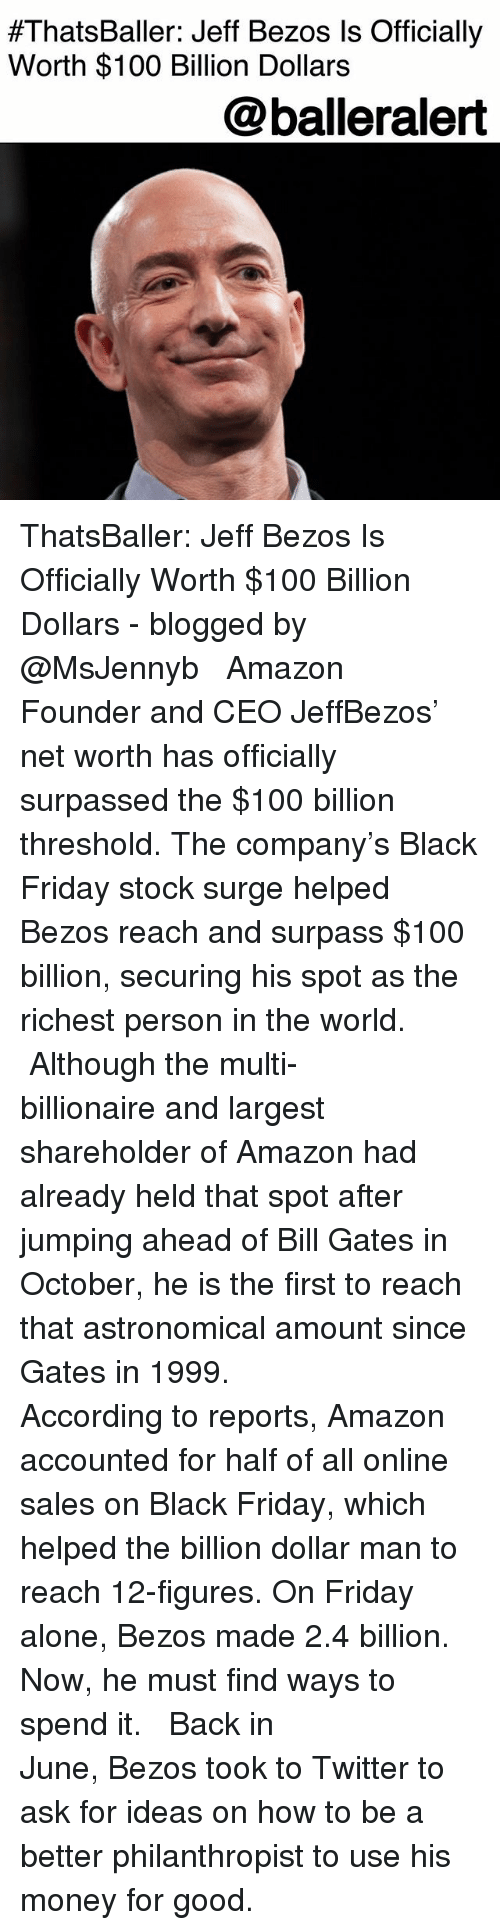 Net Worth:  #ThatsBaller: Jeff Bezos Is Officially  Worth $100 Billion Dollars  @balleralert ThatsBaller: Jeff Bezos Is Officially Worth $100 Billion Dollars - blogged by @MsJennyb ⠀⠀⠀⠀⠀⠀⠀ ⠀⠀⠀⠀⠀⠀⠀ Amazon Founder and CEO JeffBezos' net worth has officially surpassed the $100 billion threshold. The company's Black Friday stock surge helped Bezos reach and surpass $100 billion, securing his spot as the richest person in the world. ⠀⠀⠀⠀⠀⠀⠀ ⠀⠀⠀⠀⠀⠀⠀ Although the multi-billionaire and largest shareholder of Amazon had already held that spot after jumping ahead of Bill Gates in October, he is the first to reach that astronomical amount since Gates in 1999. ⠀⠀⠀⠀⠀⠀⠀ ⠀⠀⠀⠀⠀⠀⠀ According to reports, Amazon accounted for half of all online sales on Black Friday, which helped the billion dollar man to reach 12-figures. On Friday alone, Bezos made 2.4 billion. Now, he must find ways to spend it. ⠀⠀⠀⠀⠀⠀⠀ ⠀⠀⠀⠀⠀⠀⠀ Back in June, Bezos took to Twitter to ask for ideas on how to be a better philanthropist to use his money for good.